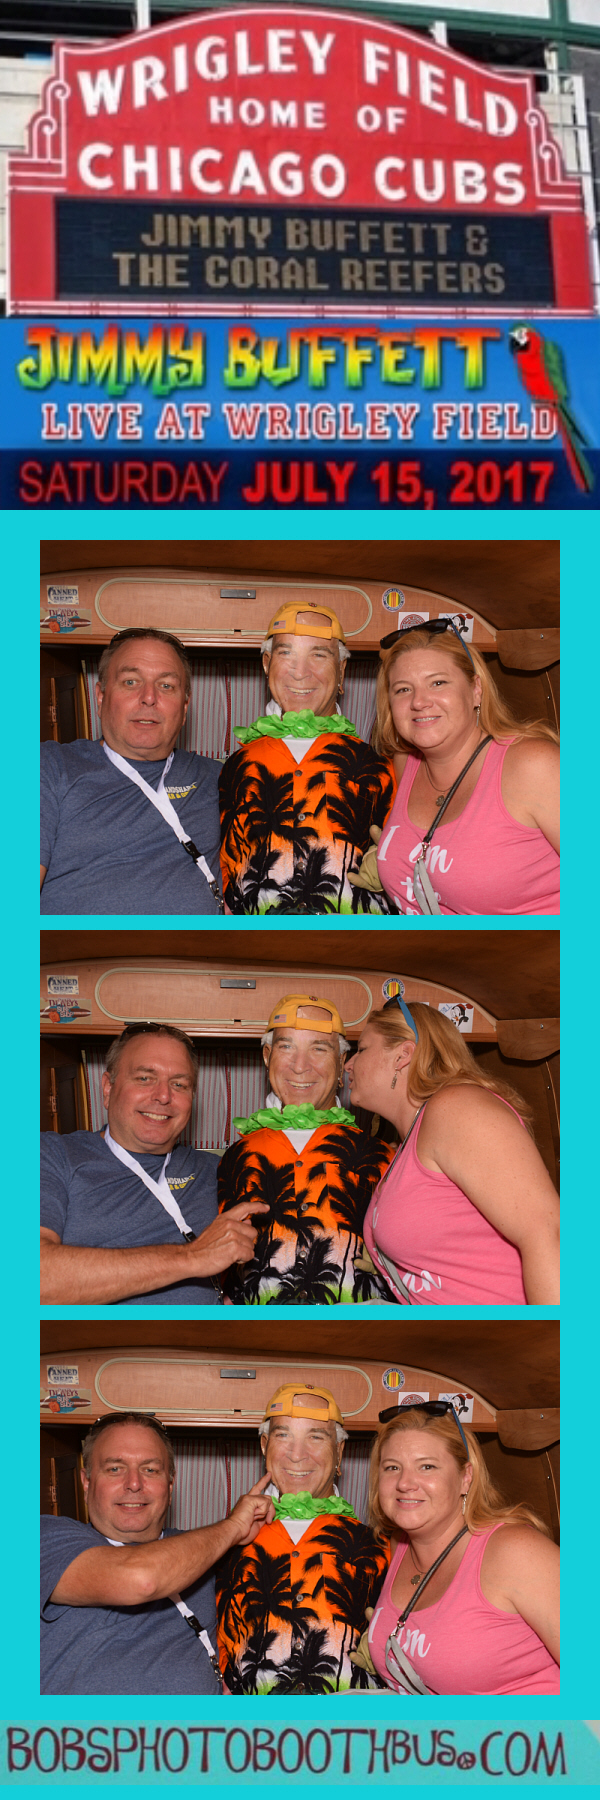 Jimmy Buffett final photo strip graphic_47.jpg